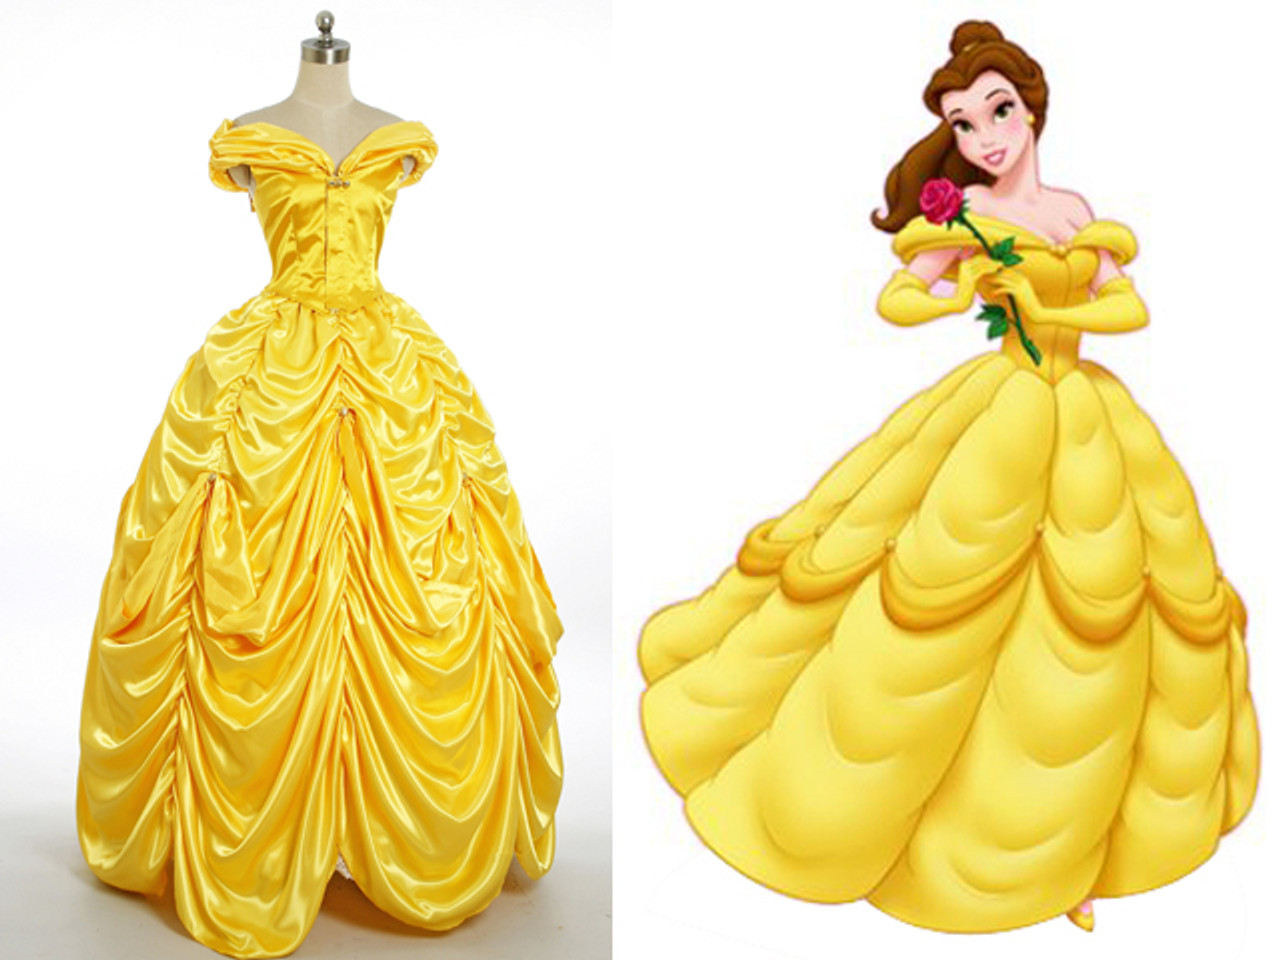 9a7a9672c70 Disney Beauty and the Beast Cosplay Belle Costume Yellow Ball Gown Civil War